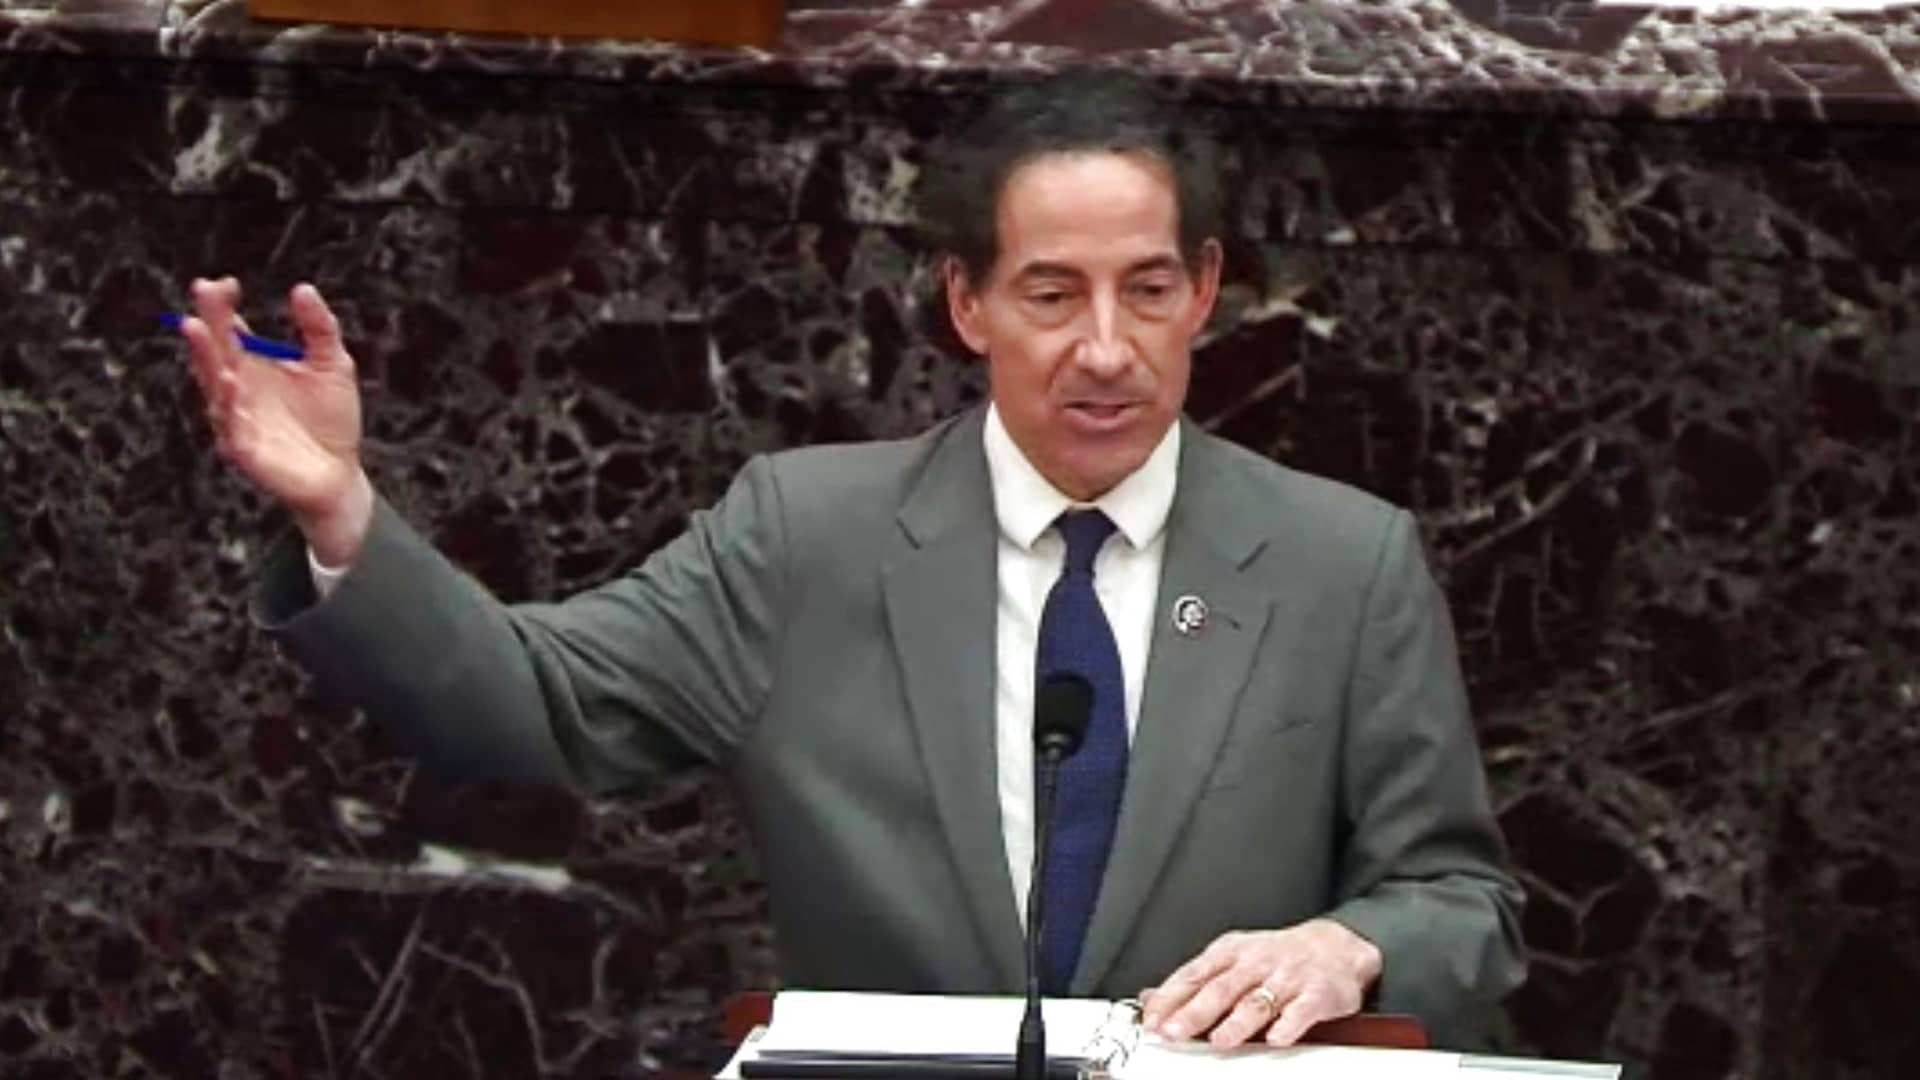 Representative Jamie Raskin, a Democrat from Maryland, speaks in the Senate Chamber in a video screenshot in Washington, D.C., on Wednesday, Feb. 10, 2021.